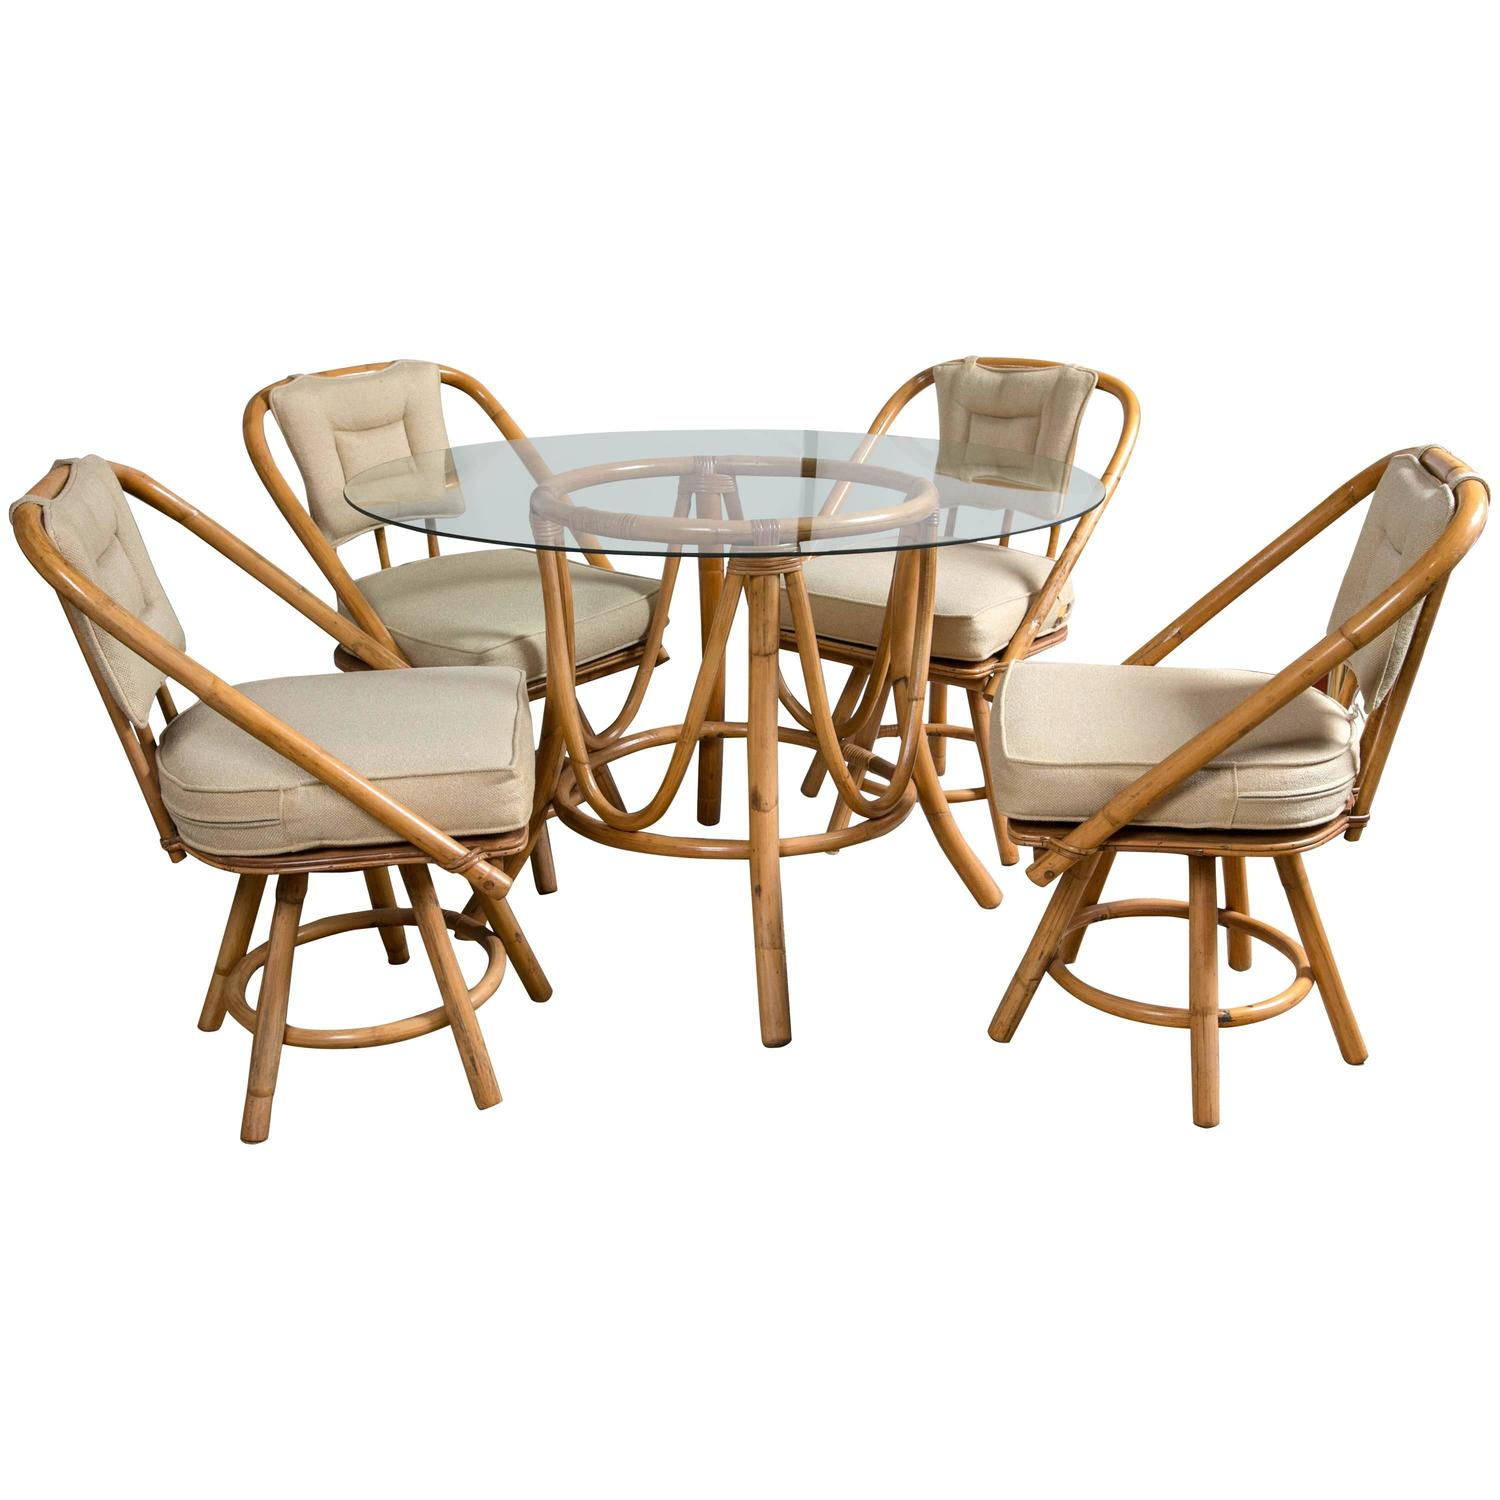 Vintage bamboo rattan round dining table and chairs at for Classic dining tables and chairs